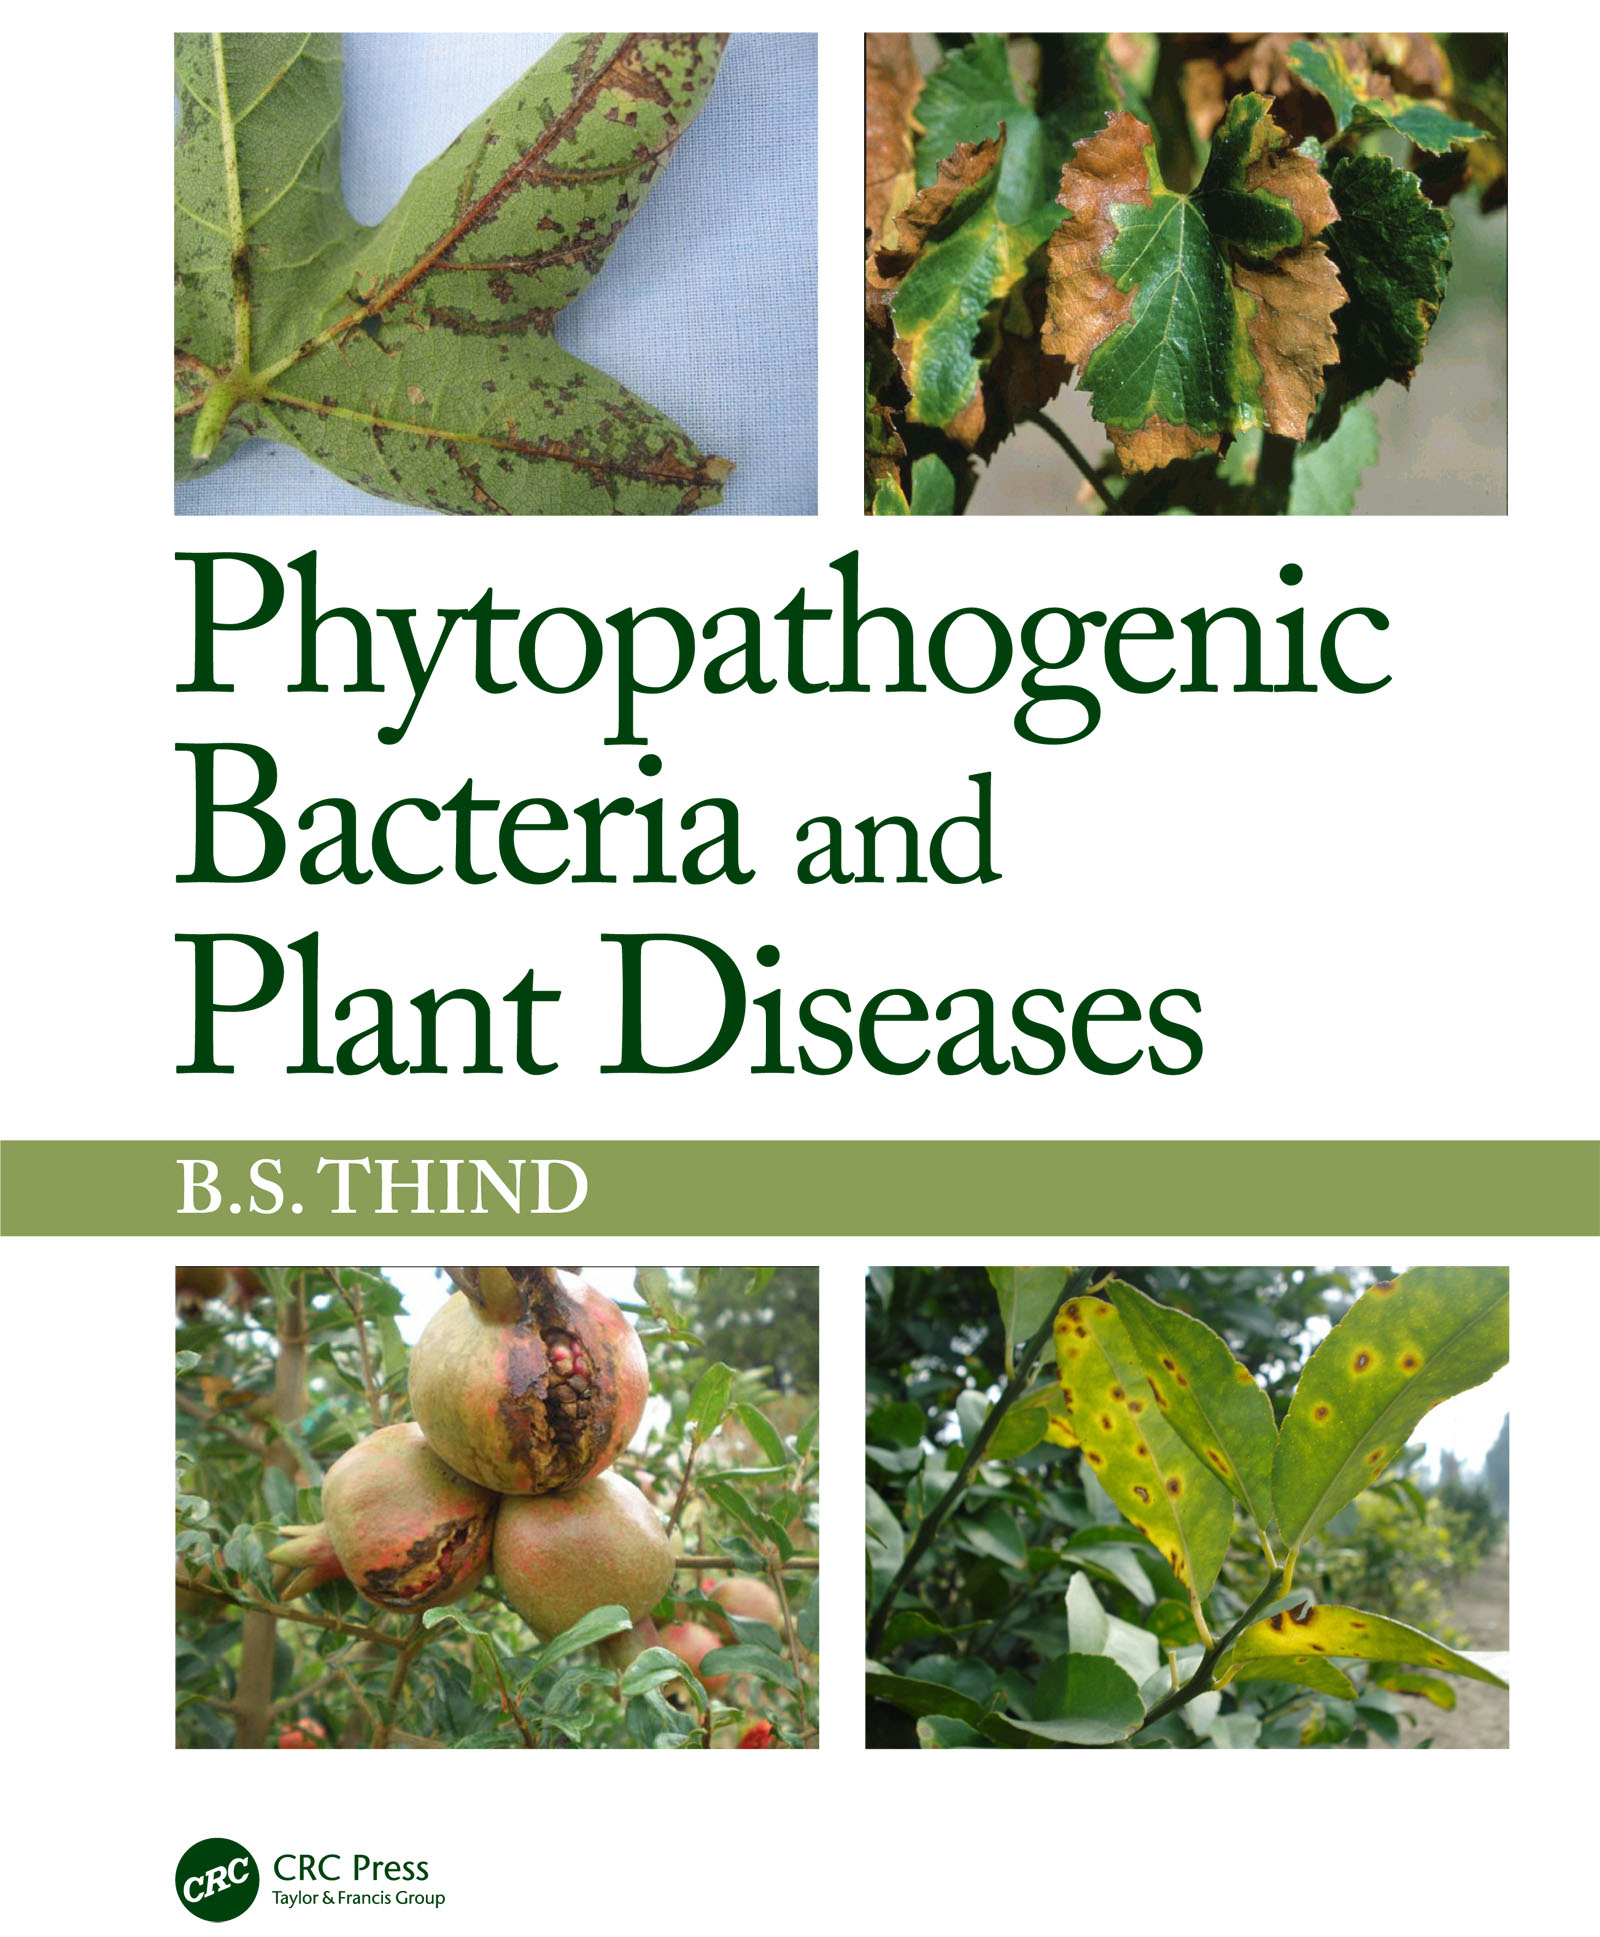 Plants as Carriers of Human Enteric Bacterial Pathogens